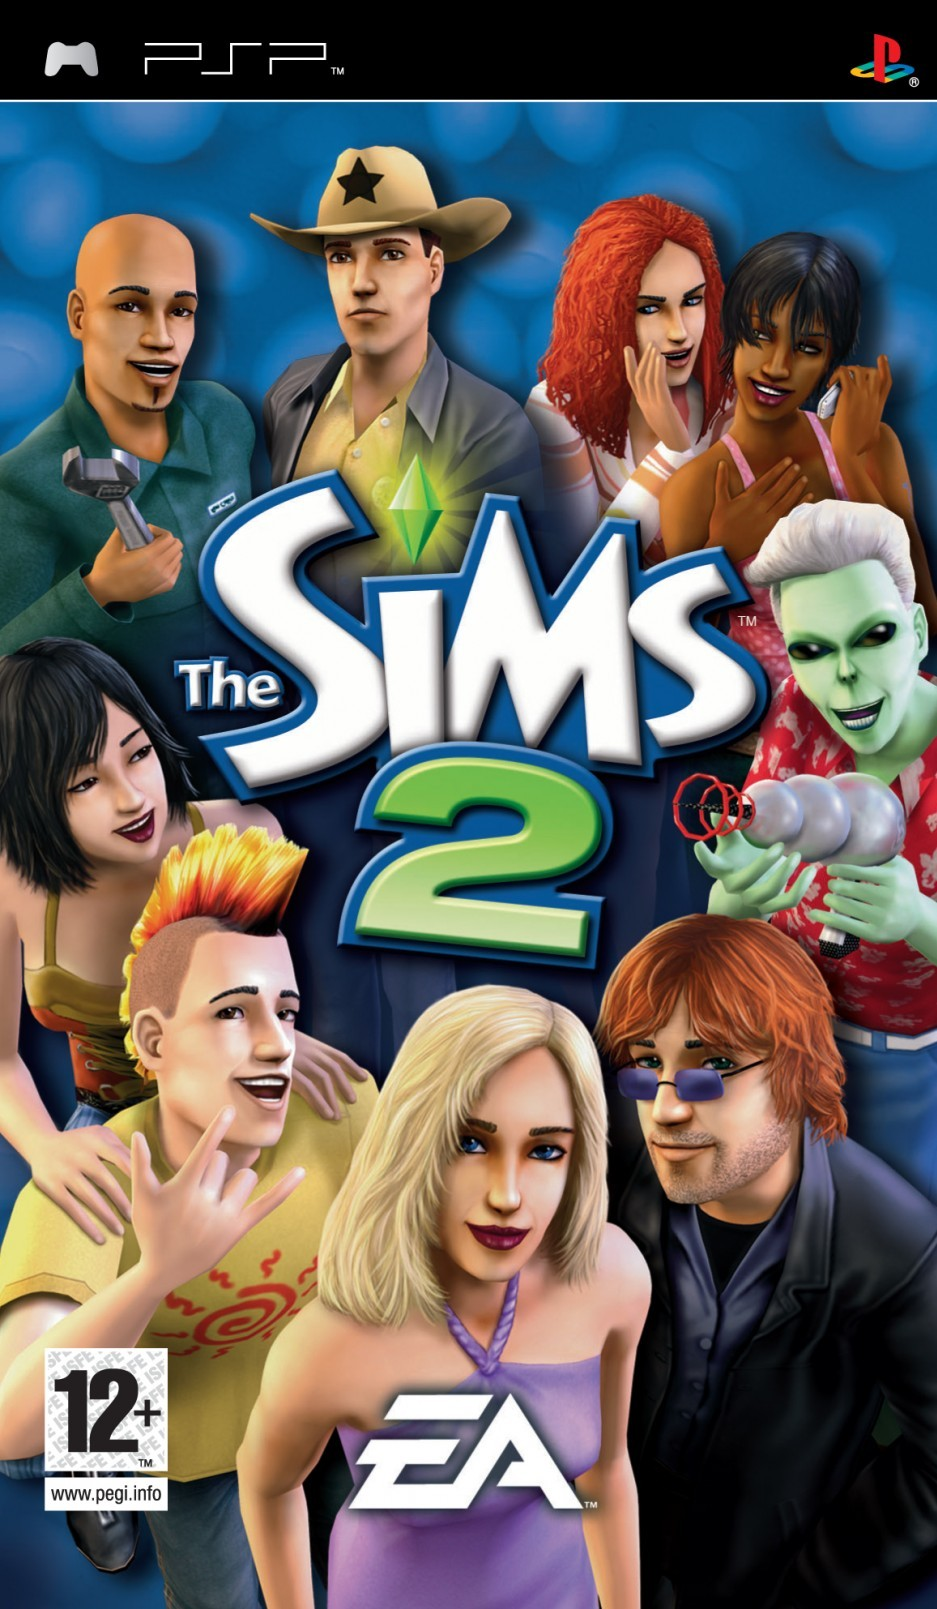 The sims 2 ps2 download free sex  sexy pic